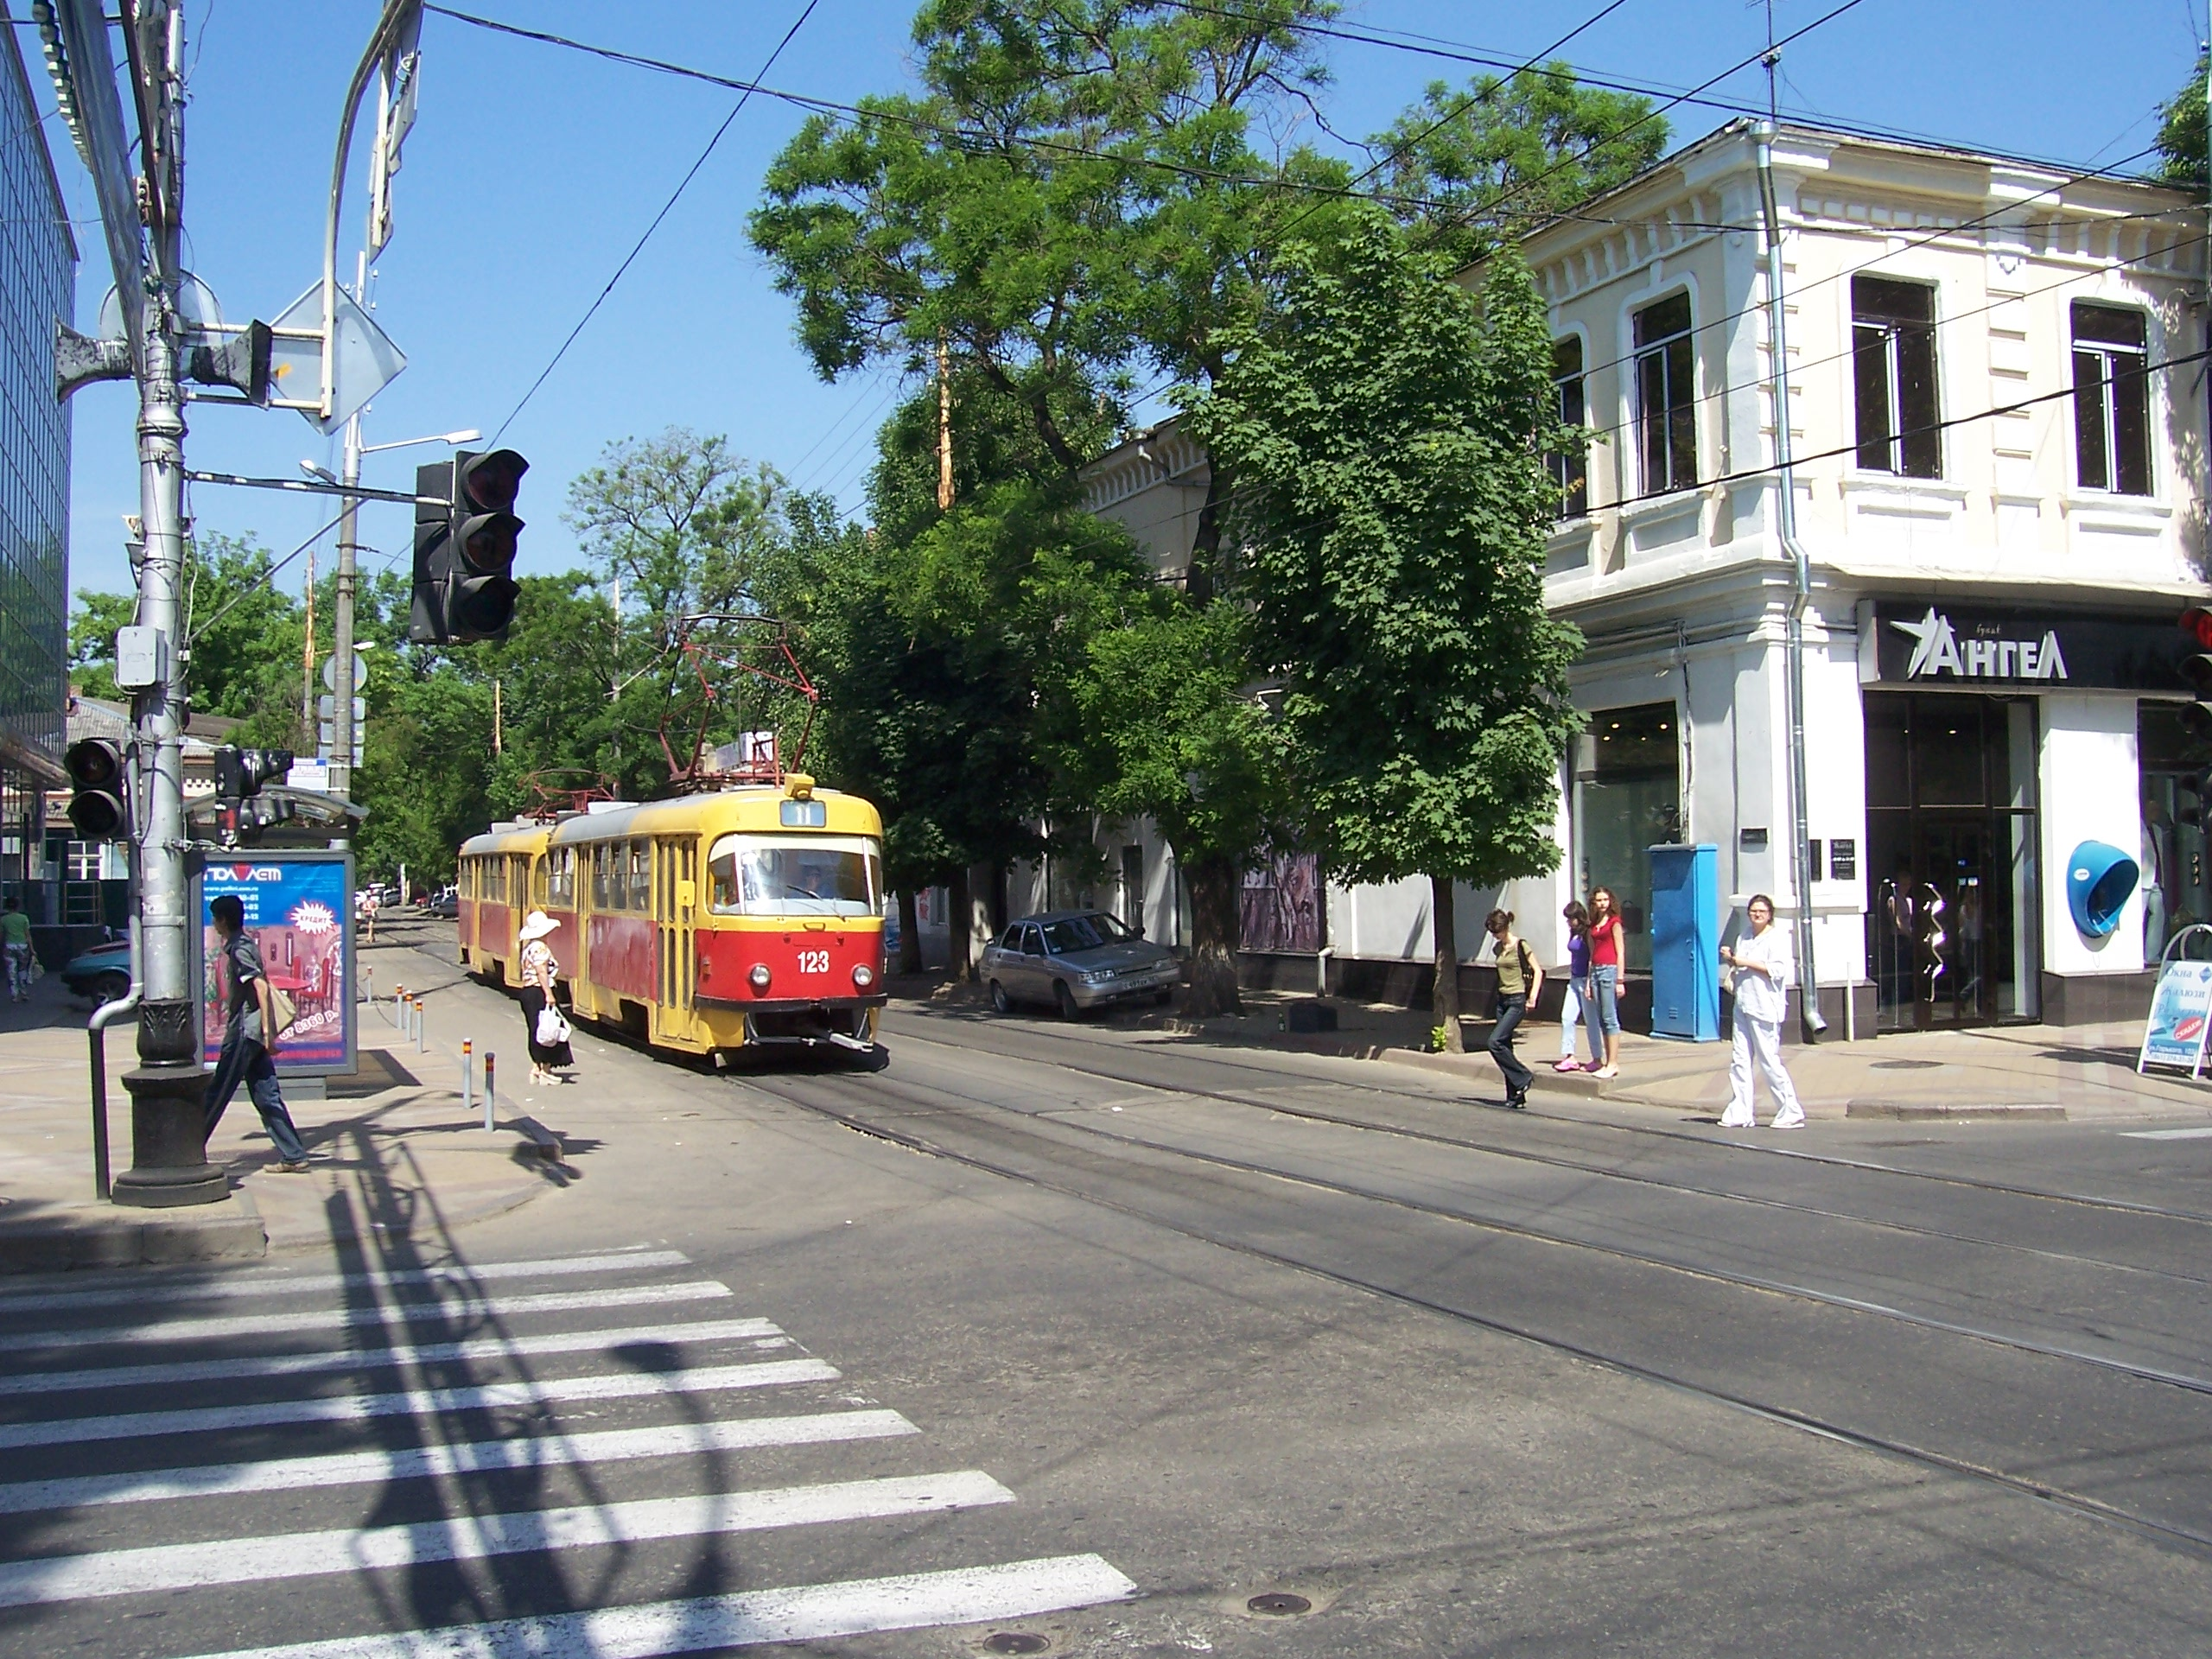 Krasnodar Russia  city photos gallery : Tram in Krasnodar 101 1815 Wikimedia Commons